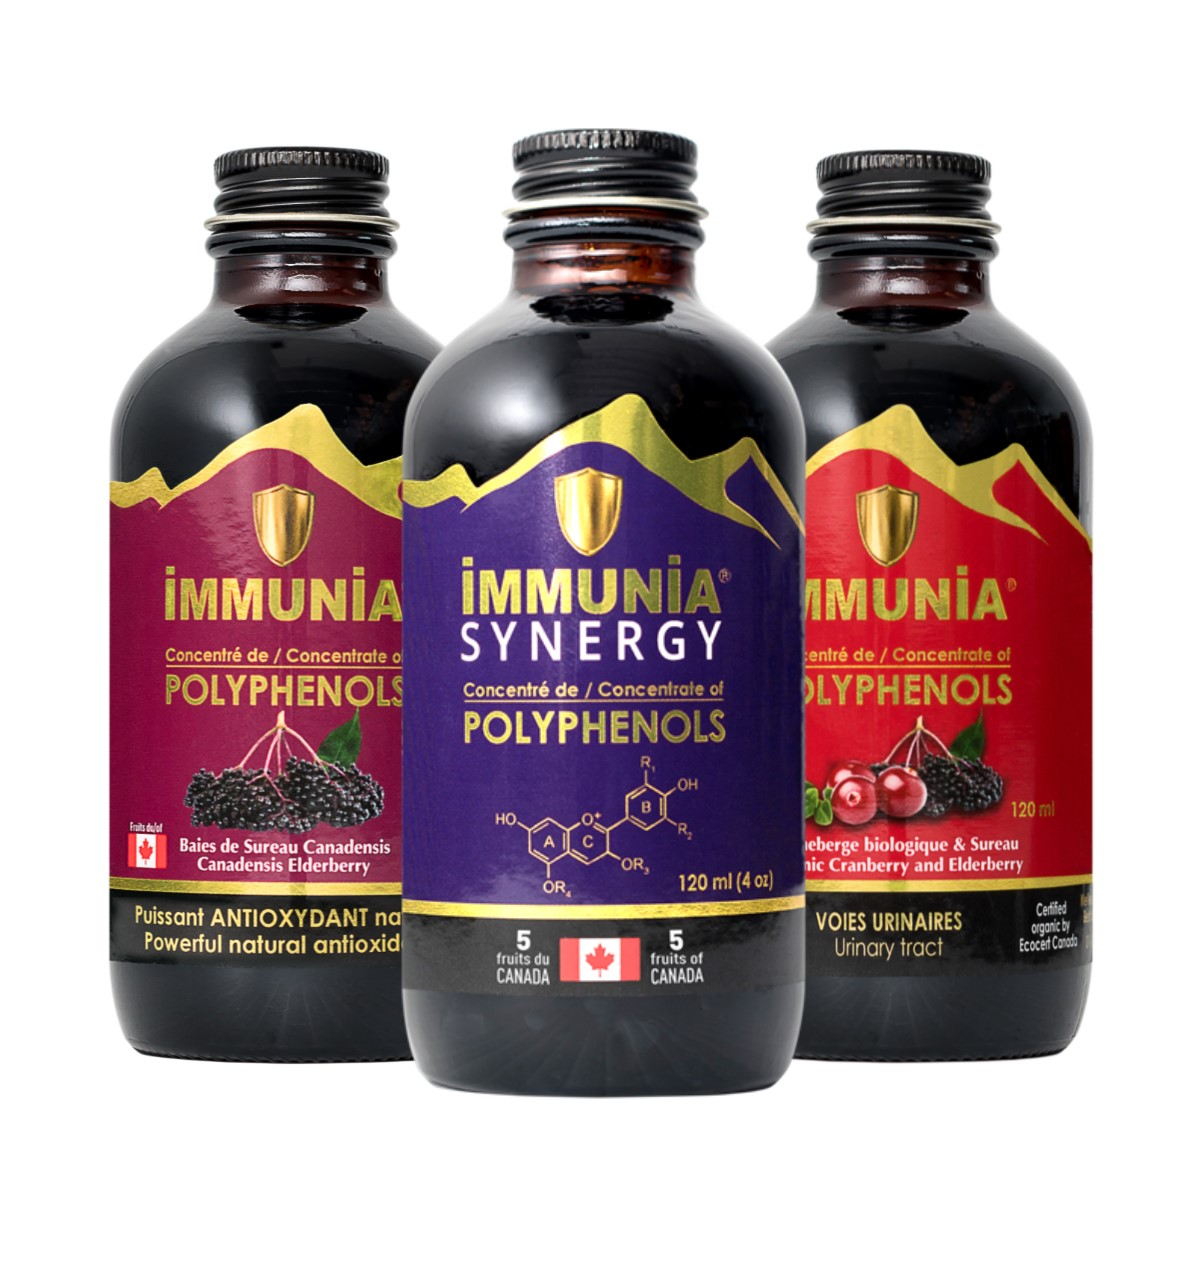 IMMUN Canada (Natural Powerful Astaxanthin Antioxidant Supplement for Cancer)